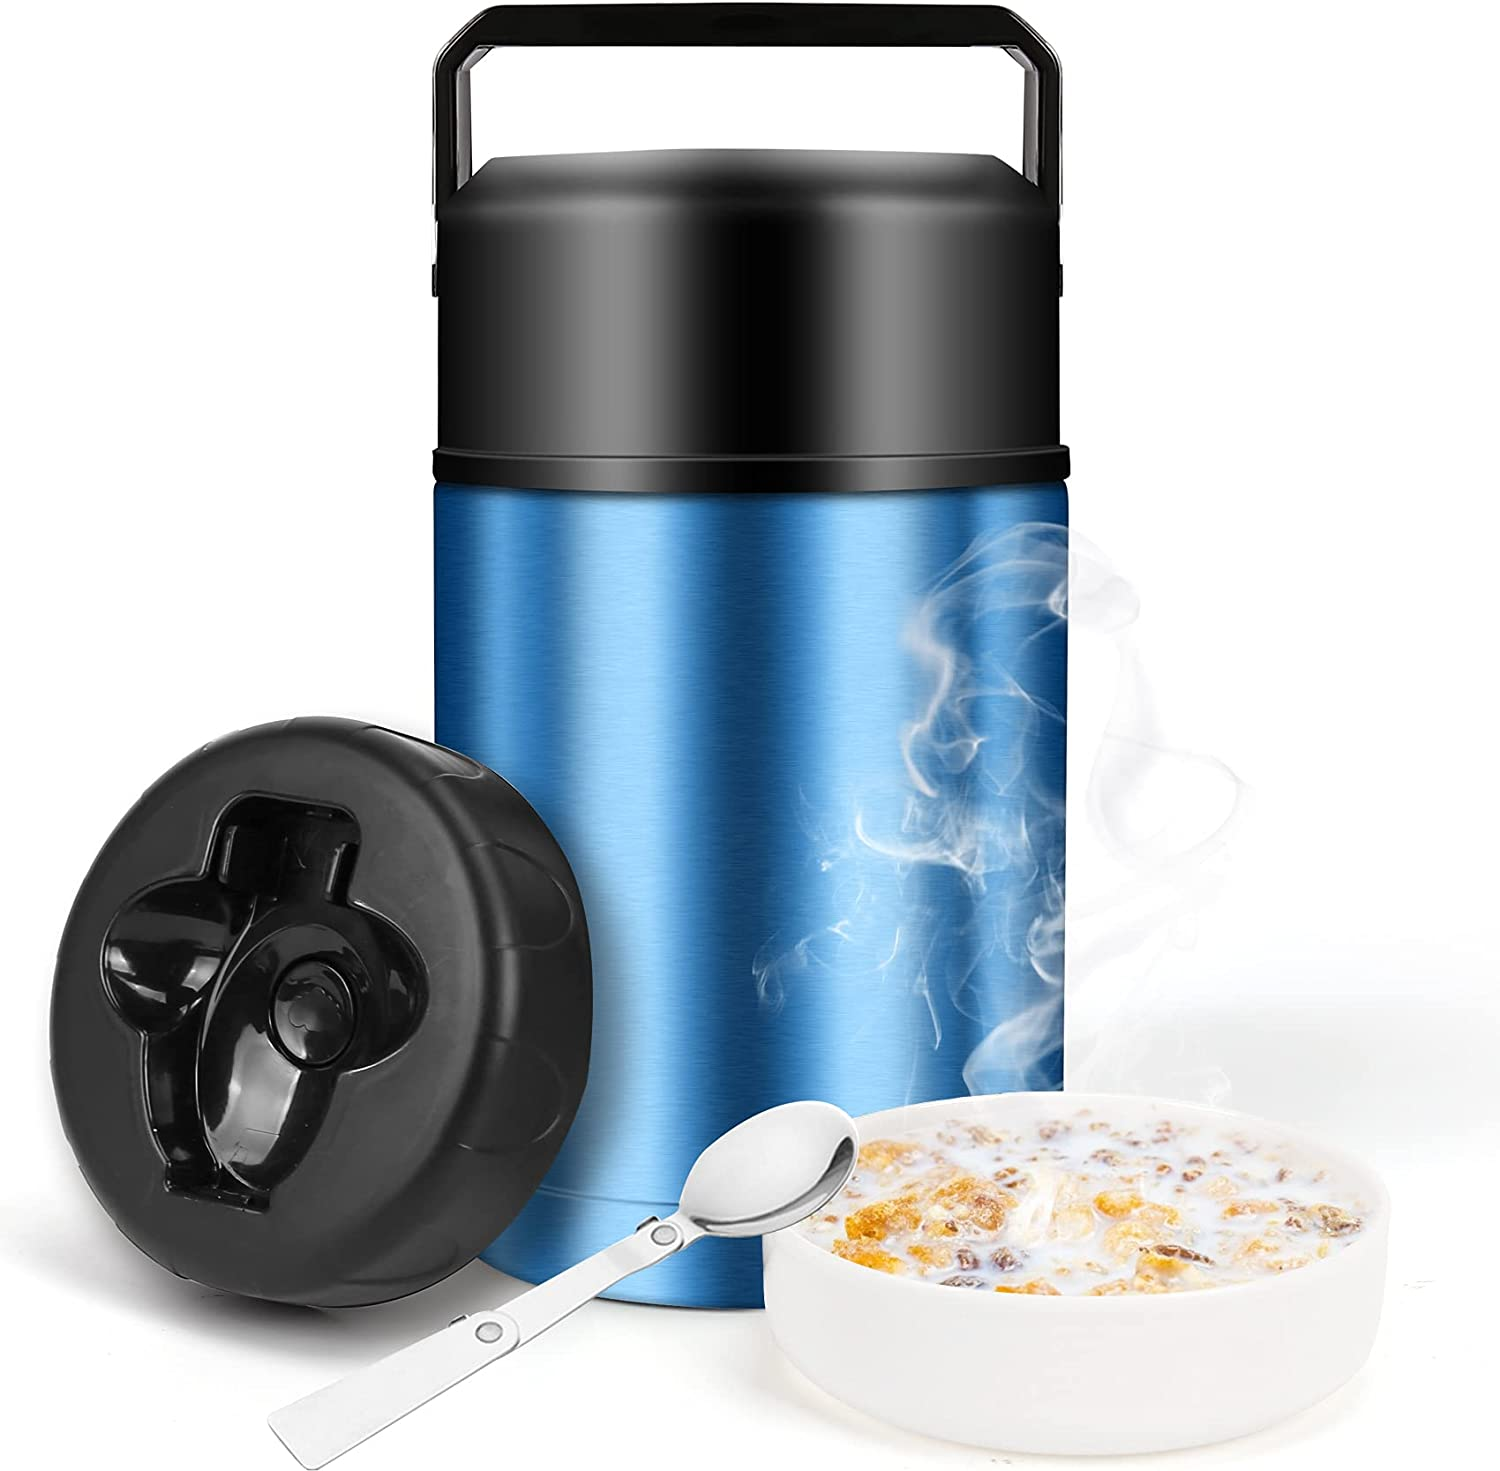 Food Thermos,34oz Insulated Food Jar for Hot Food with Folding Spoon and Handle,Leak Proof Wide Mouth Soup Thermos,Stainless Steel Thermal Lunch Container,Insulated Food Flask for Outdoors (Blue)